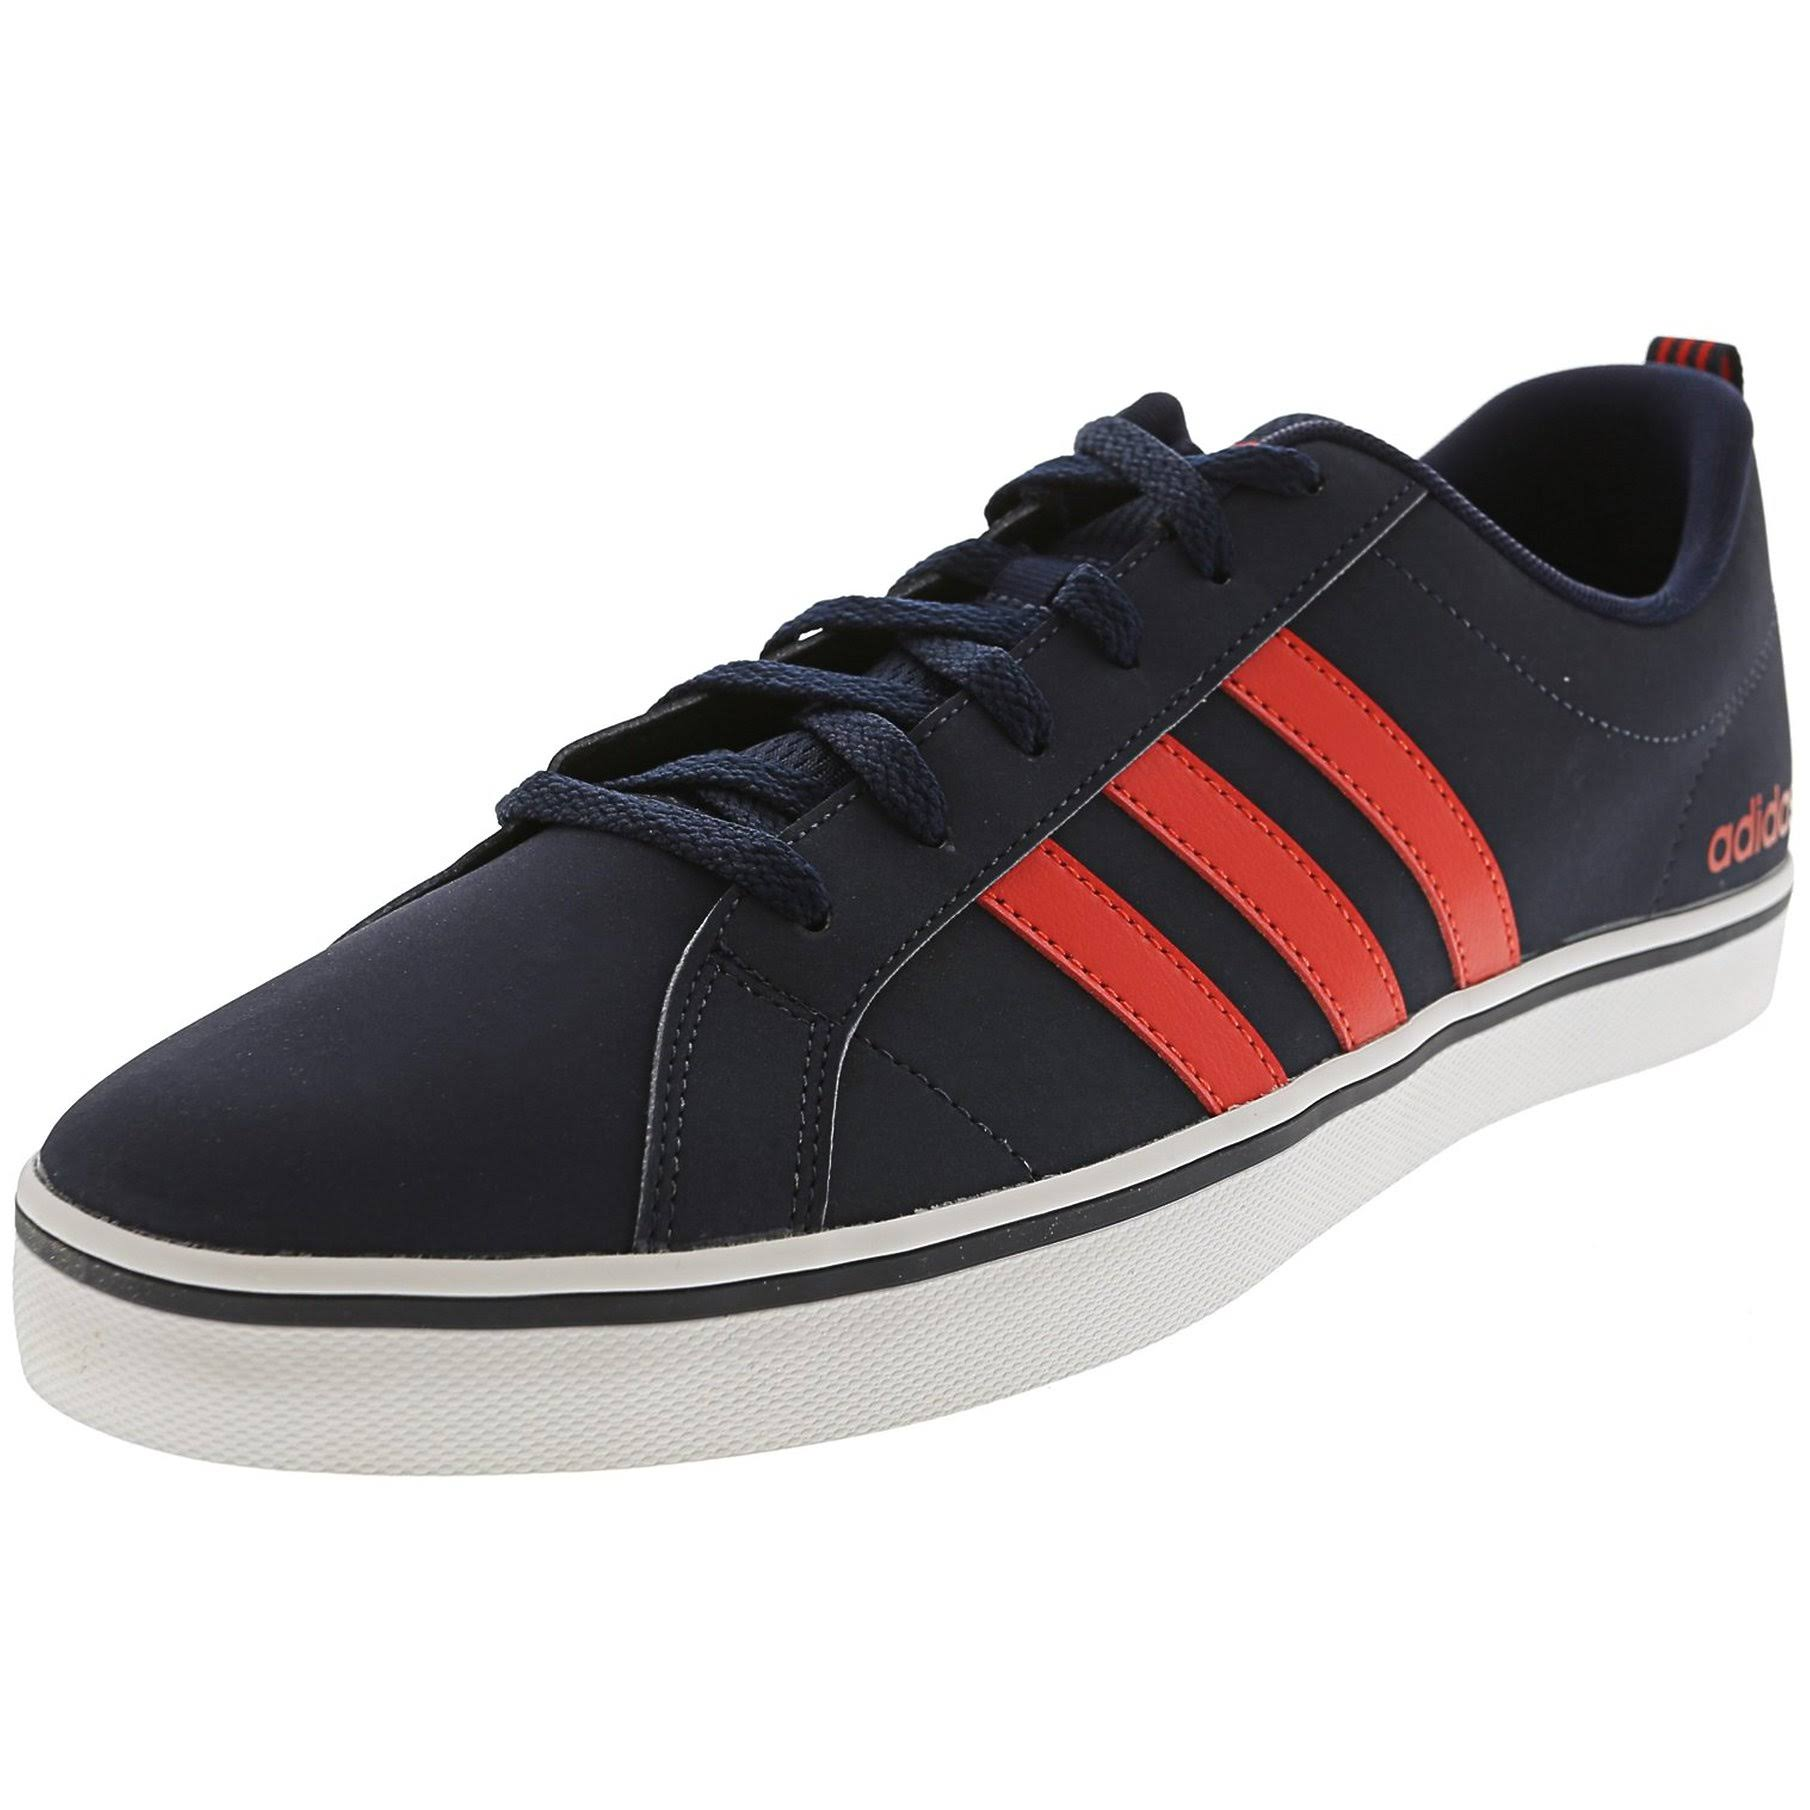 Pace Vs Hombres Casuales Low Zapatos Athleisure B74317 Top Adidas pPET5qwx